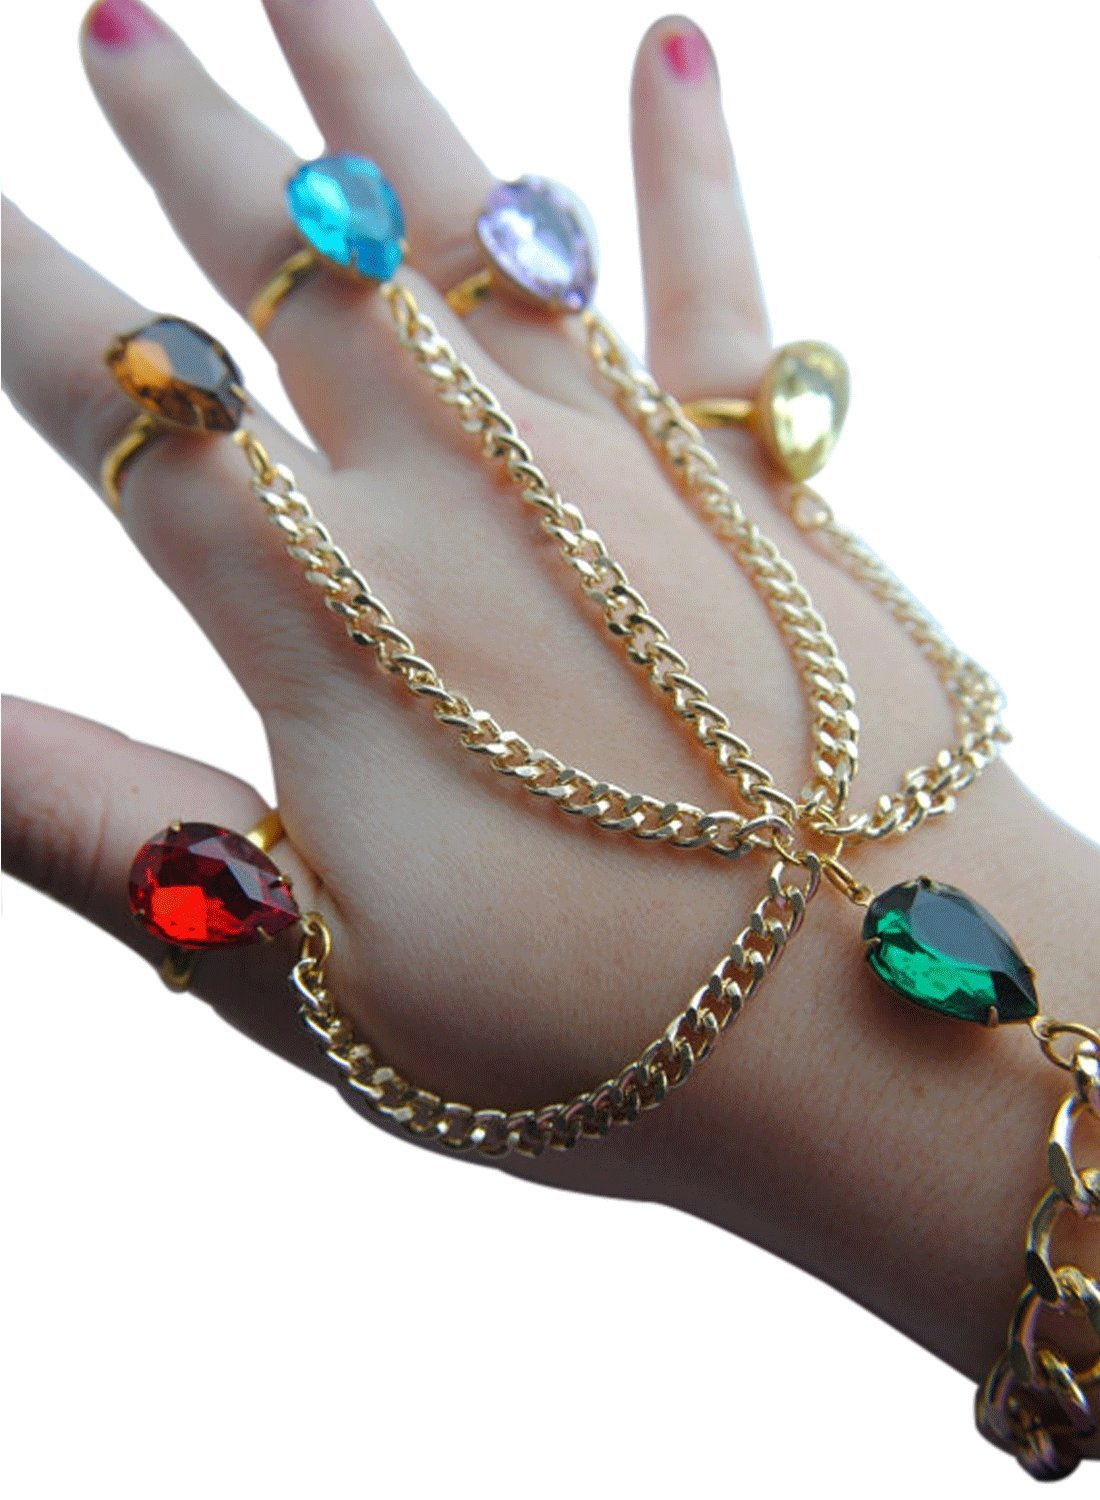 BlingSoul Infinity Thanos Slave Chain Link with Precious Stone Rings Bracelet (Infinity Chain Braclete)